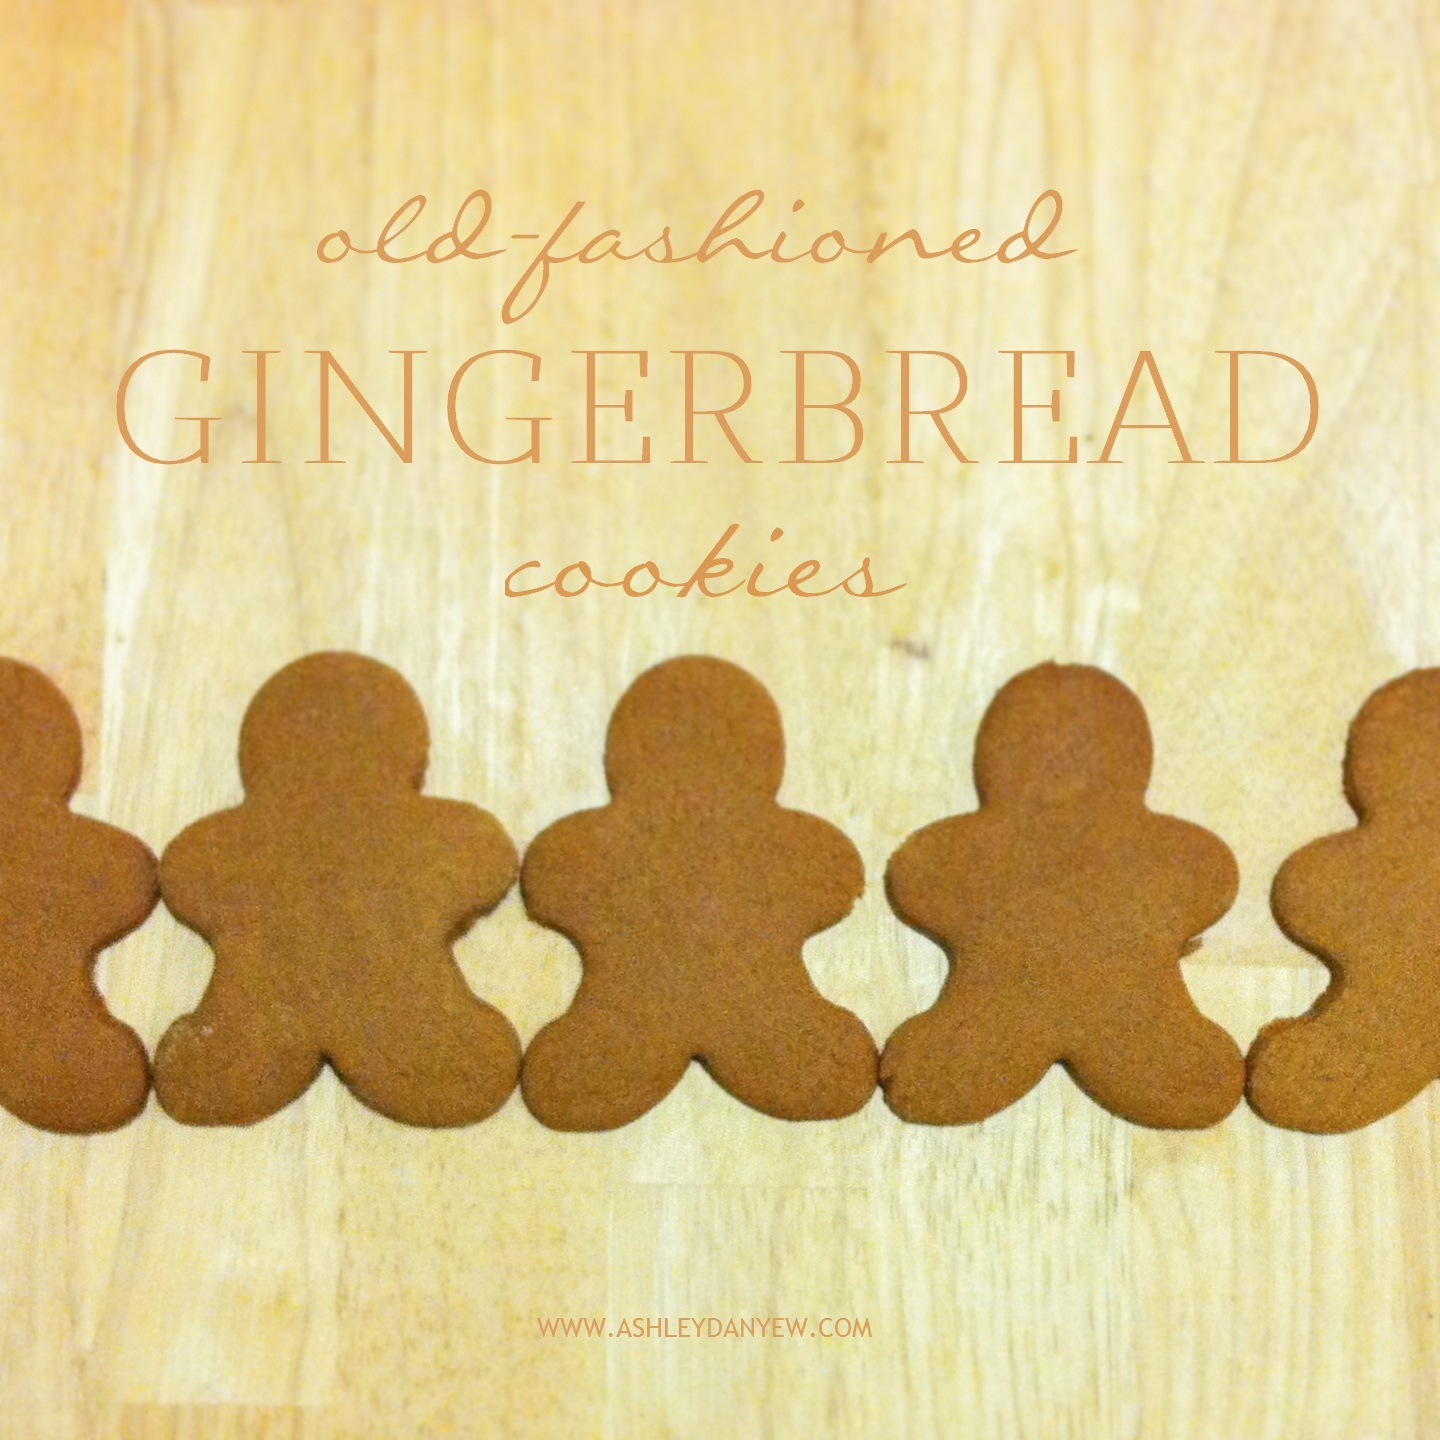 Ashley Danyew | Gingerbread